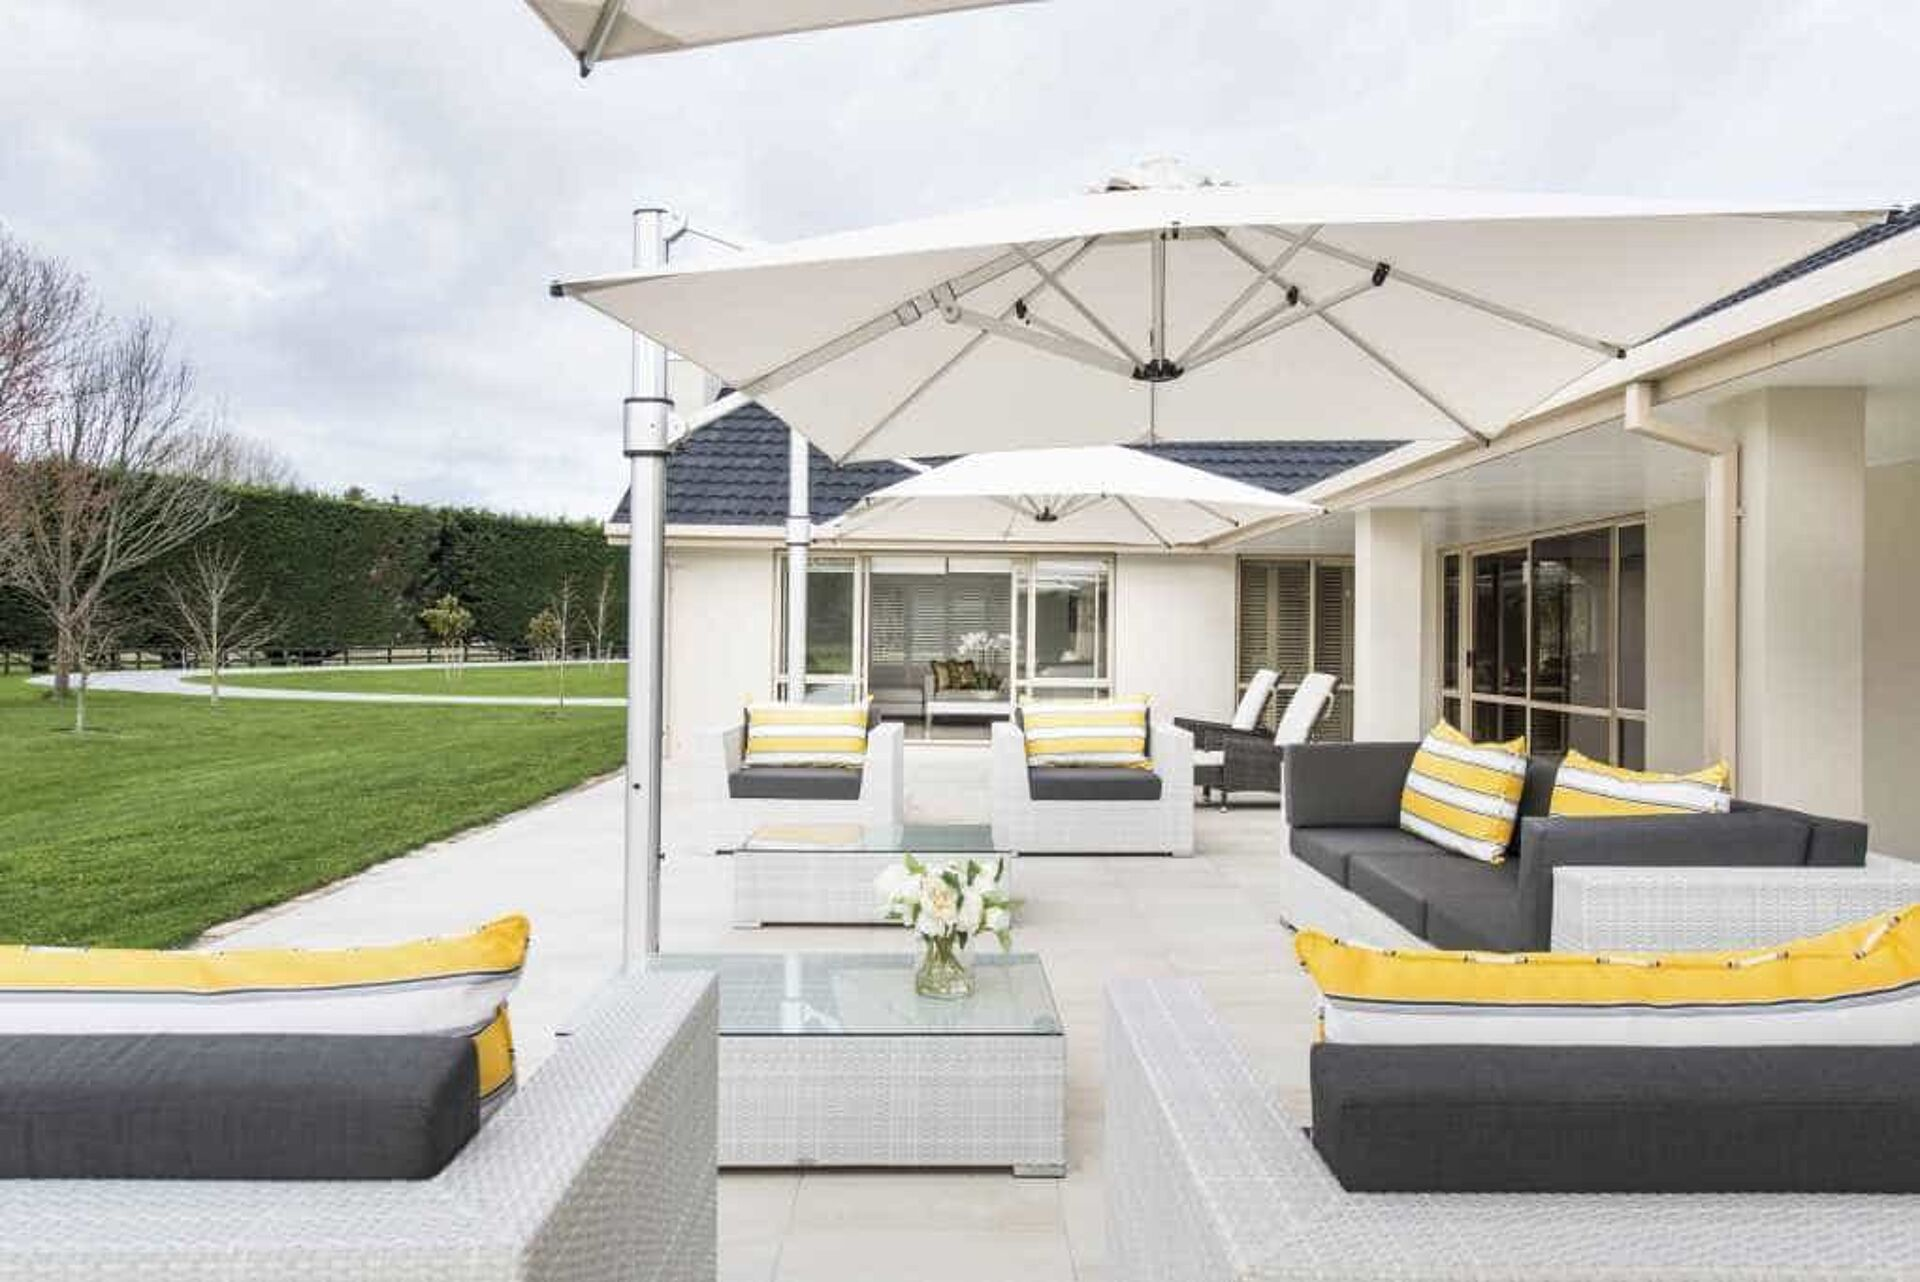 Outdoor Living Room using Large Cantilever Umbrella